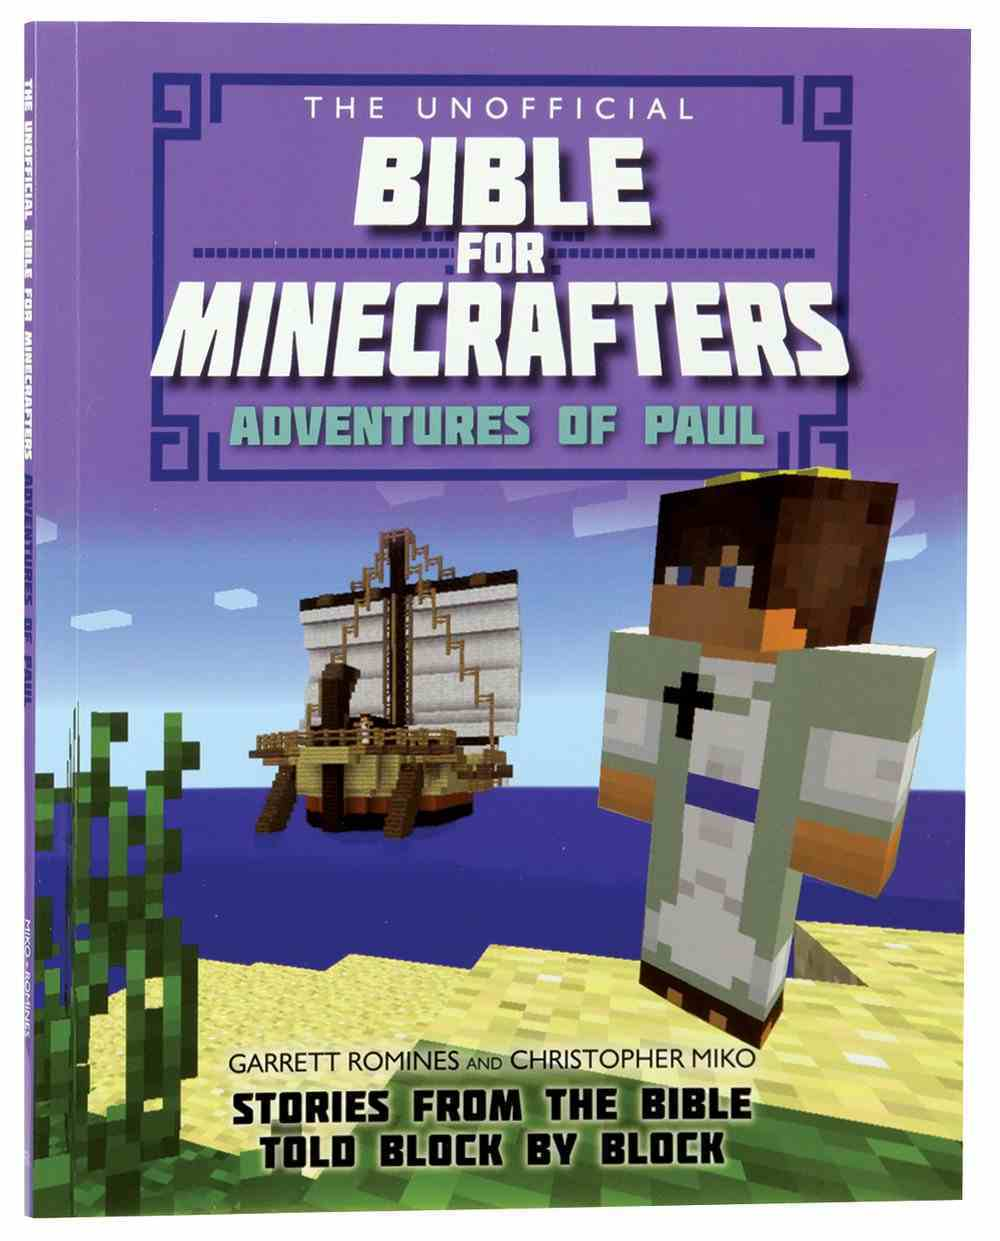 The Unofficial Bible For Minecrafters: Adventures of Paul Paperback